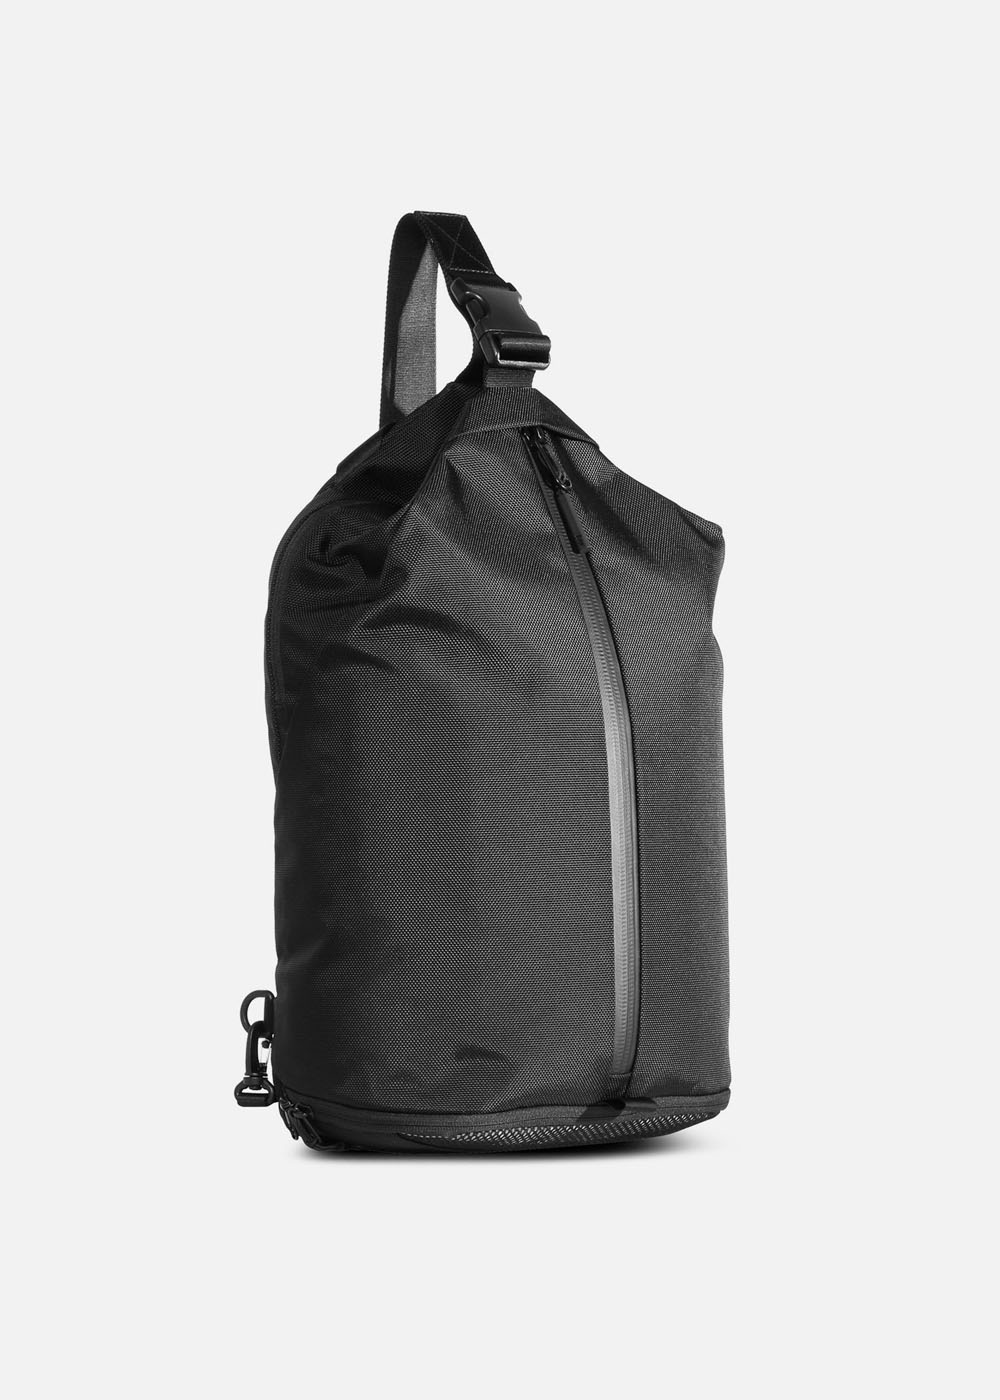 active_aer_sling_bag_2_black.JPG